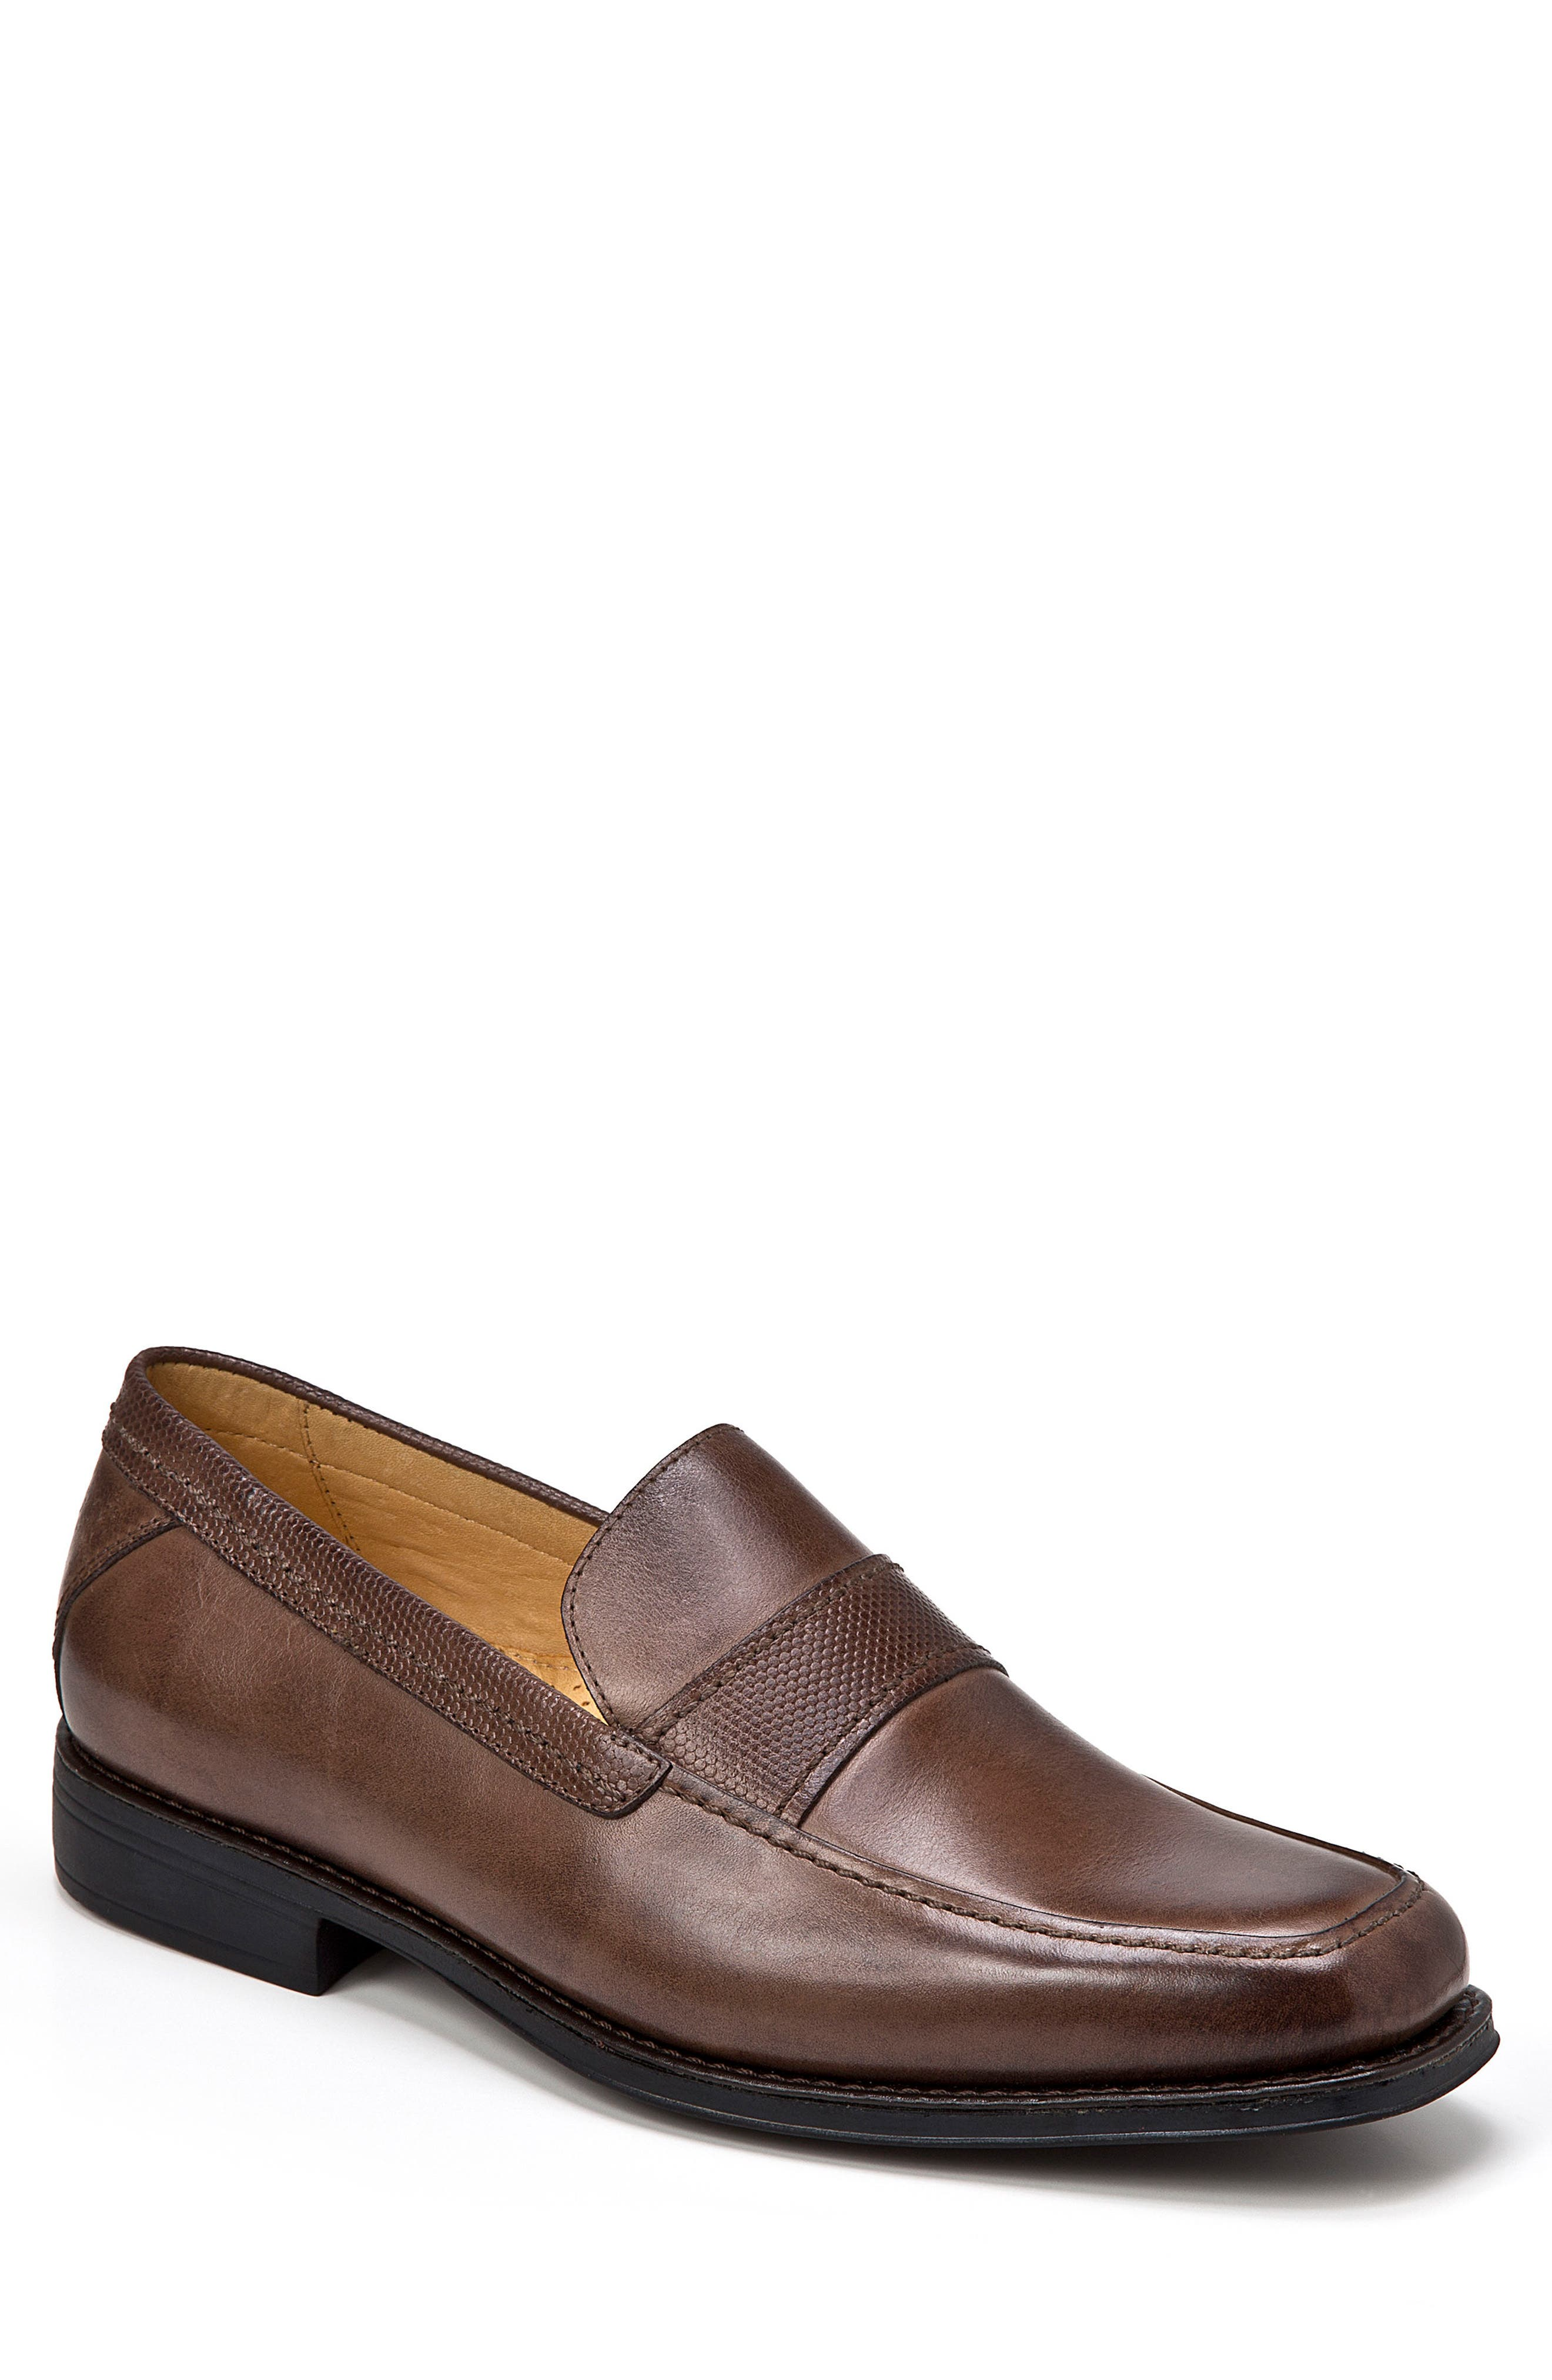 Alternate Image 1 Selected - Sandro Moscoloni Edward Loafer (Men)